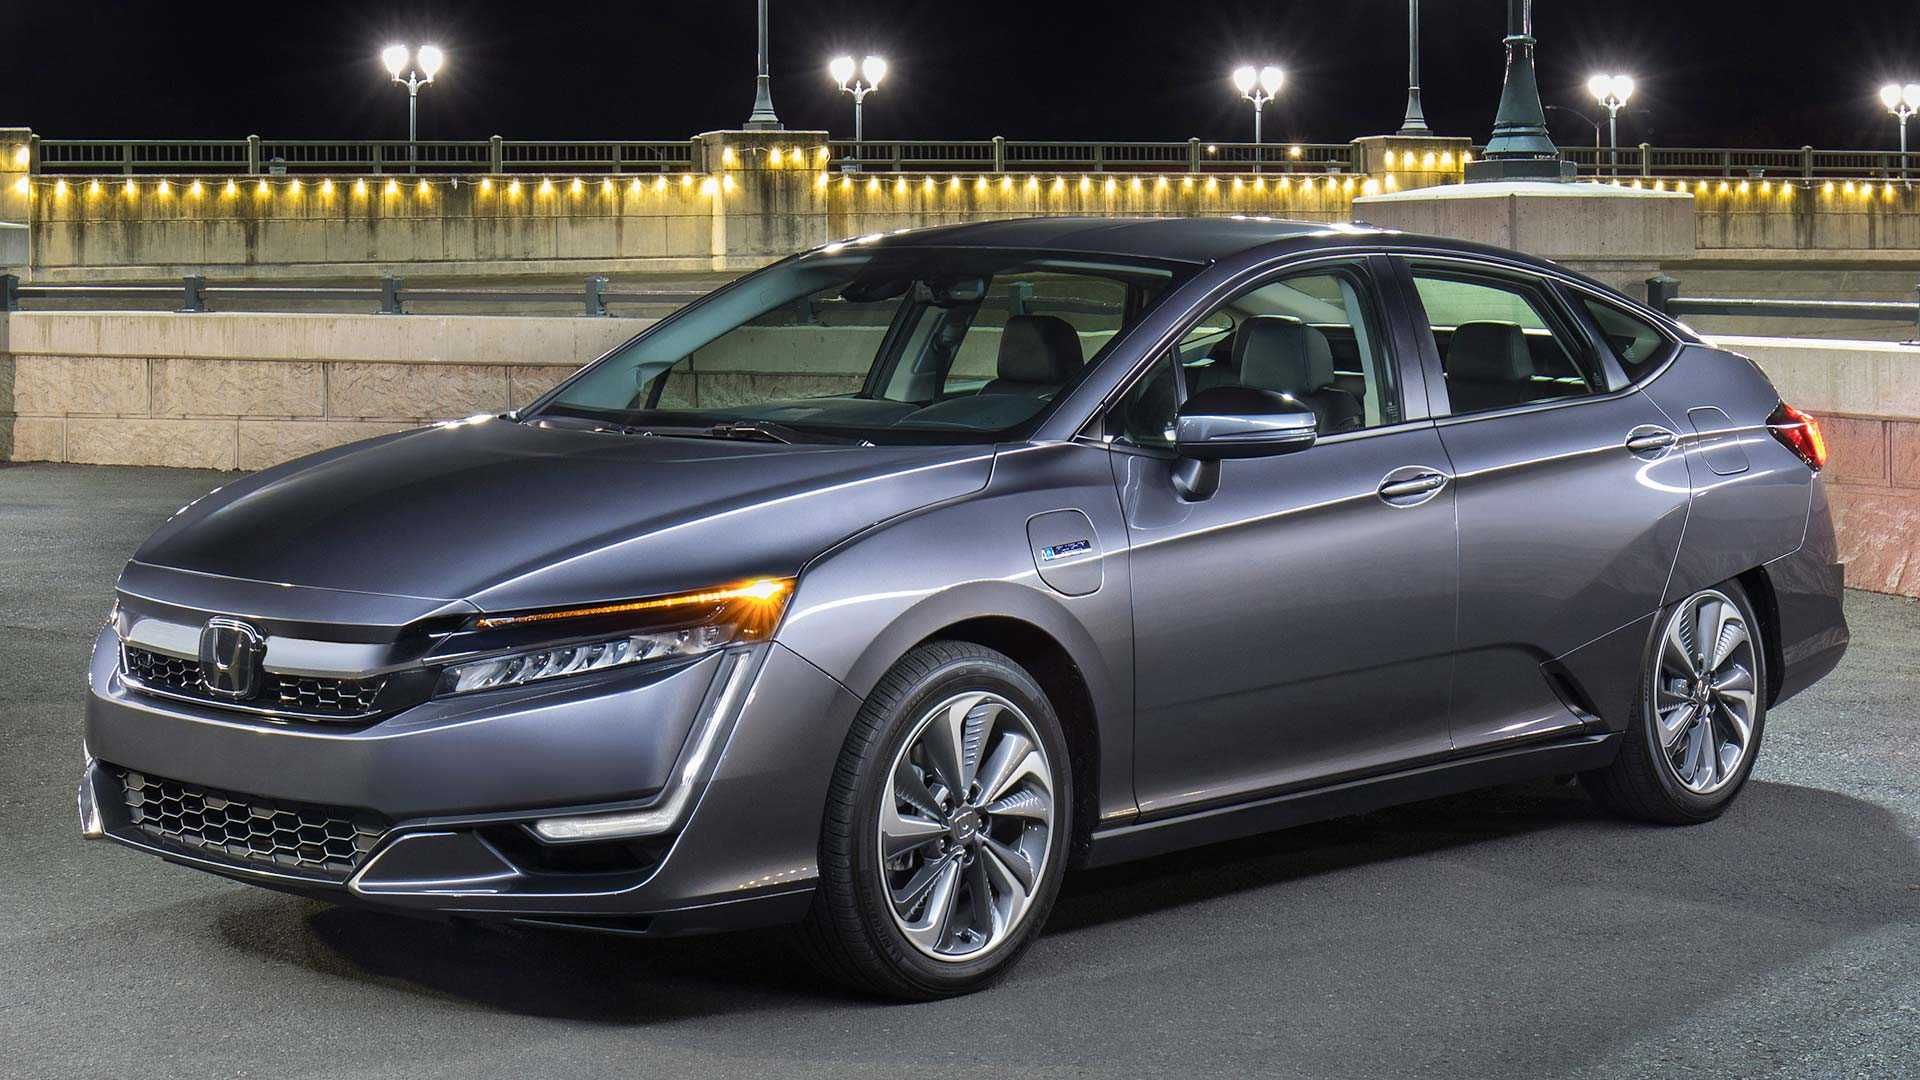 Honda Electric Cars: Past, Present And Future